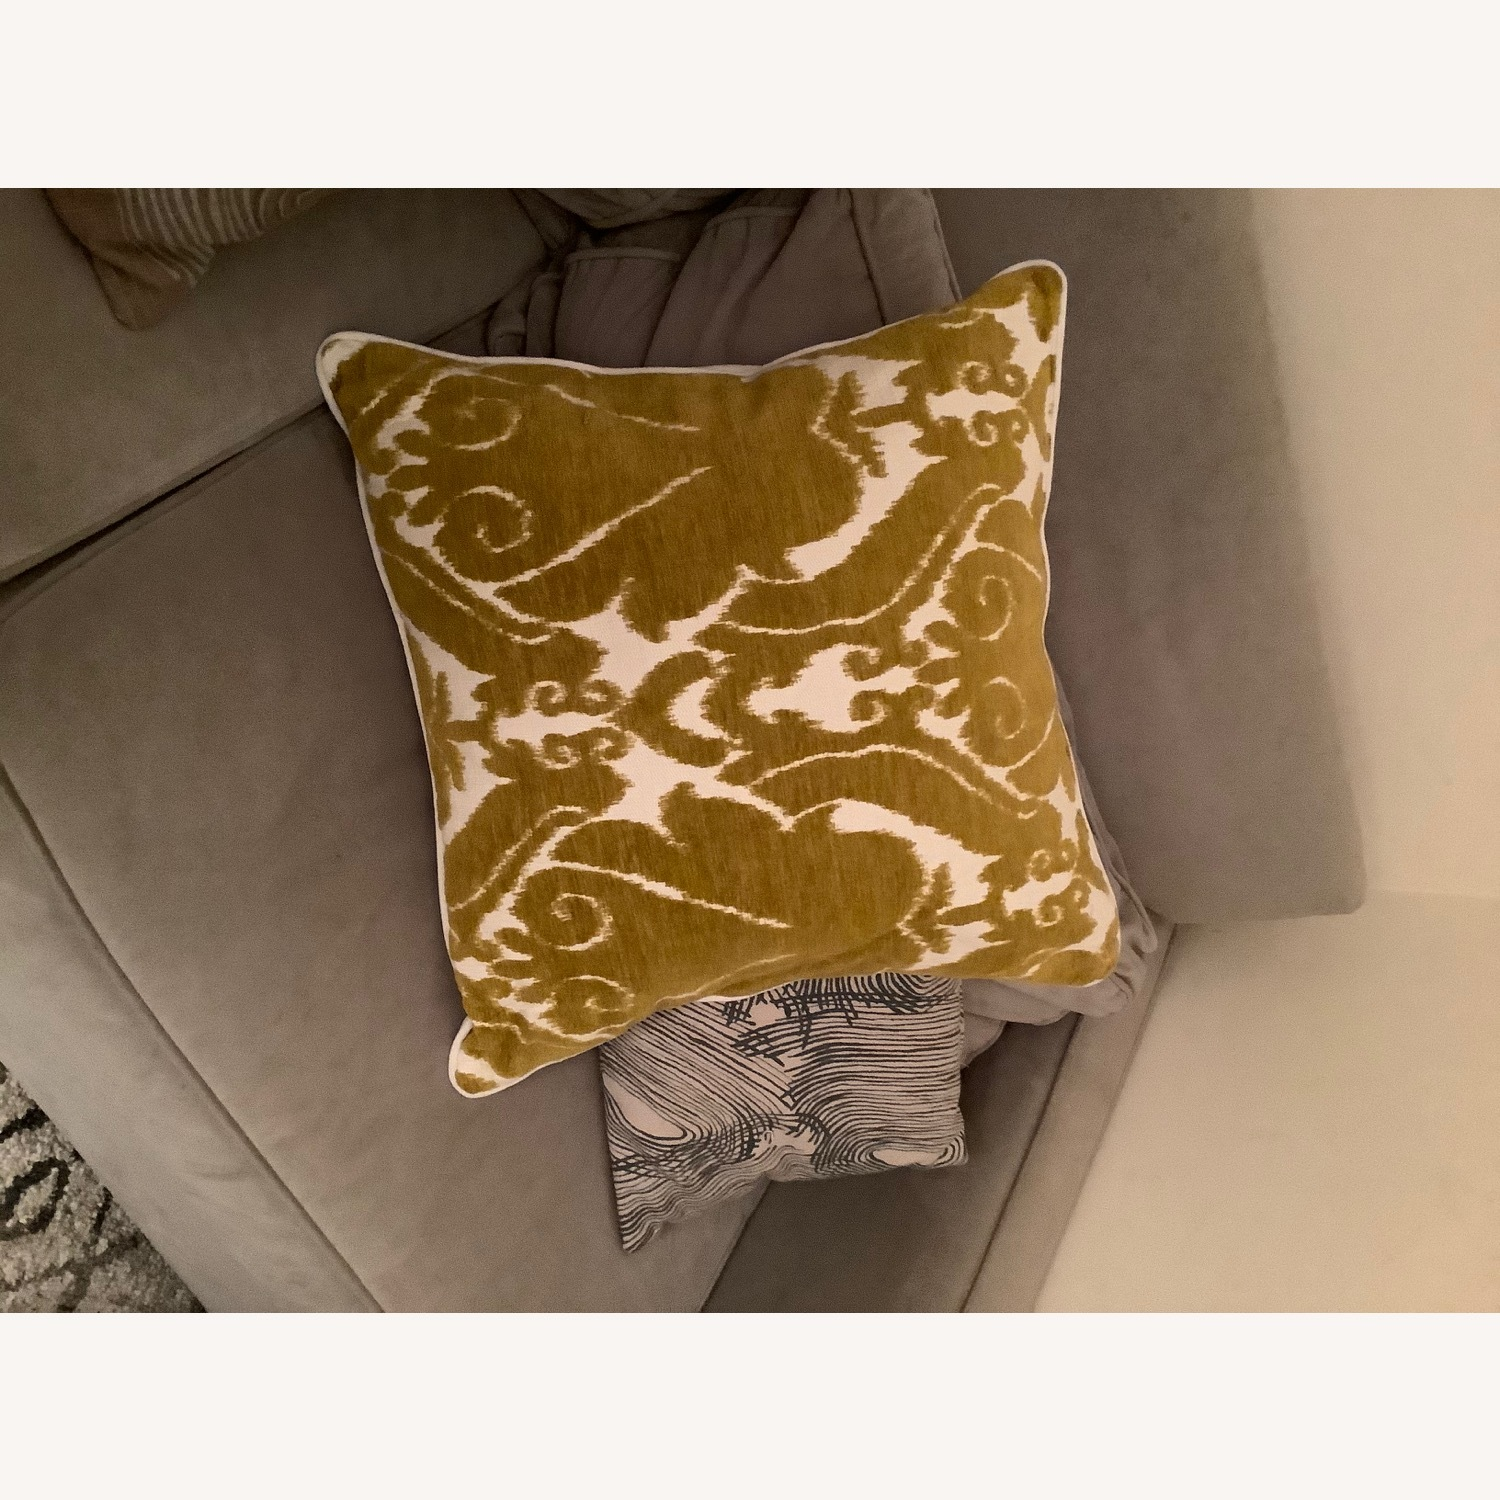 Jacquard Woven Chenille Throw Pillow - image-6